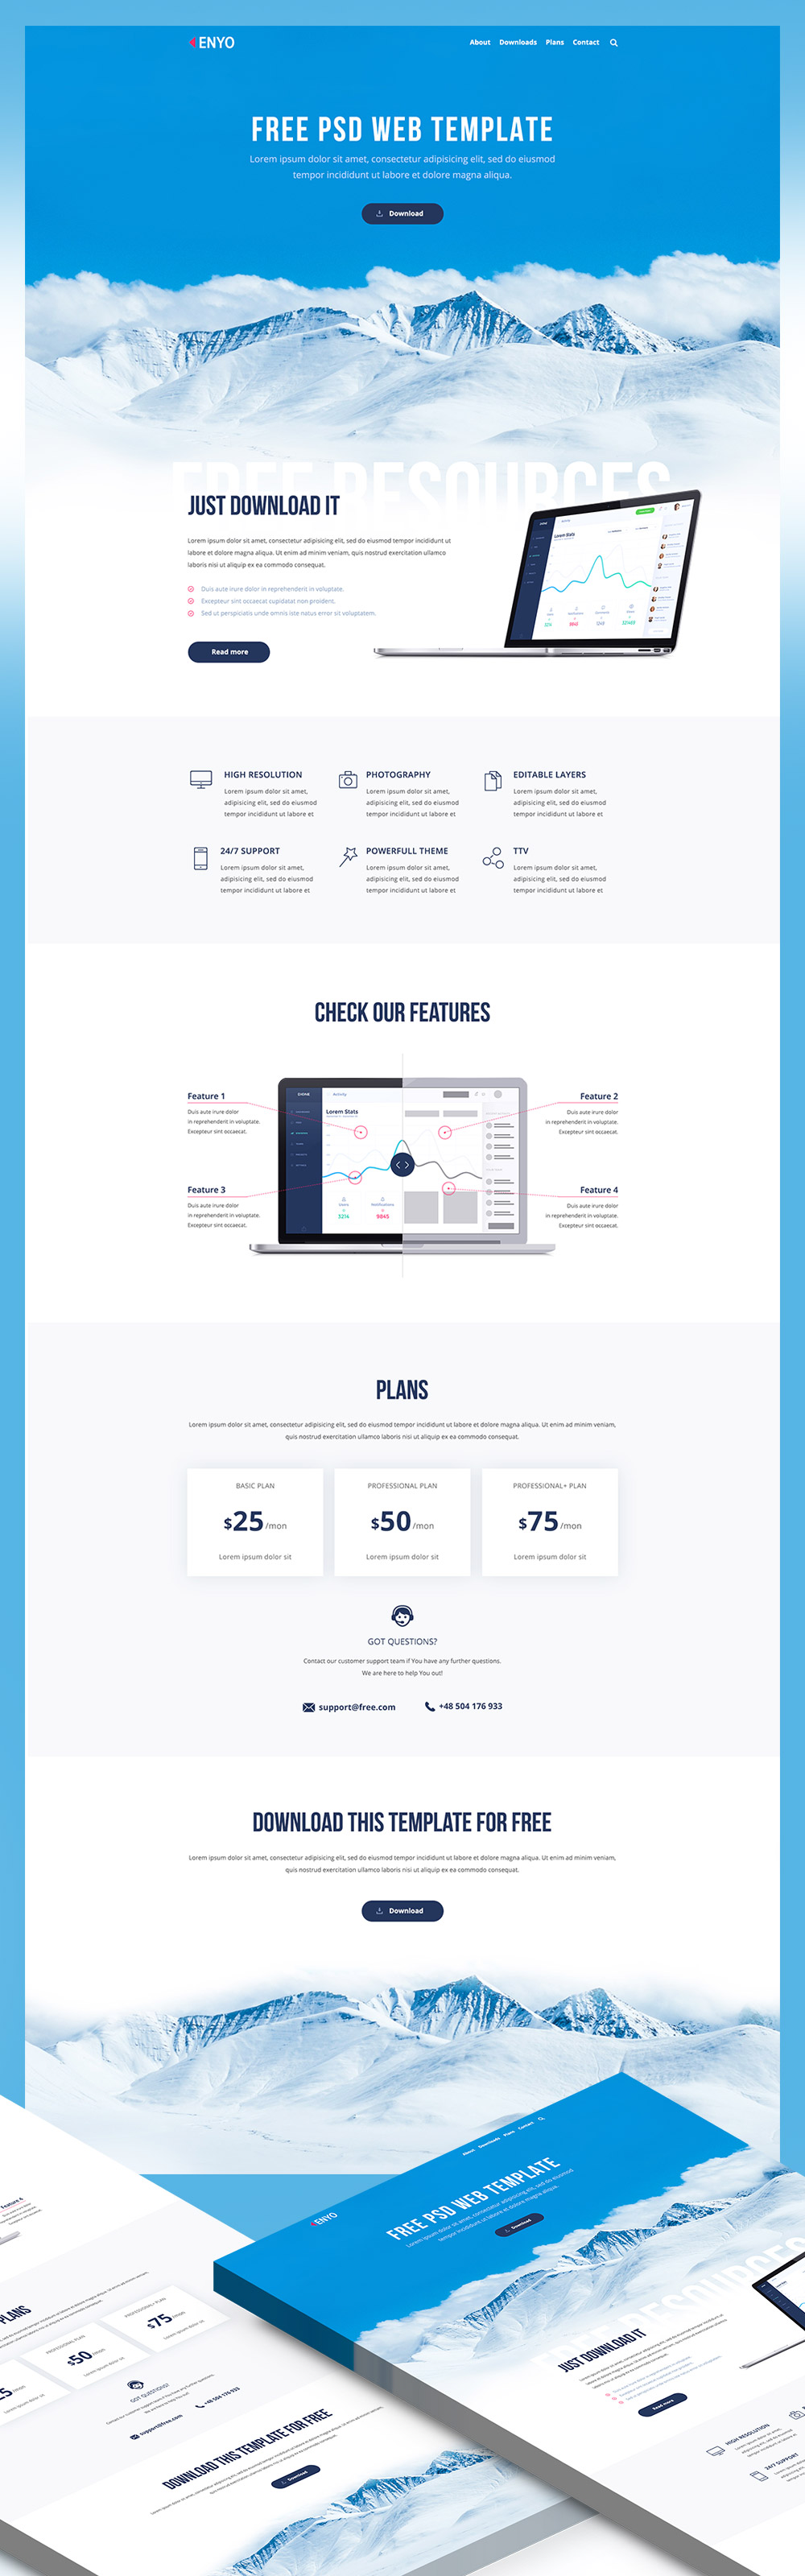 High quality 50 free corporate and business web templates psd software company website landing page psd freebie cheaphphosting Images